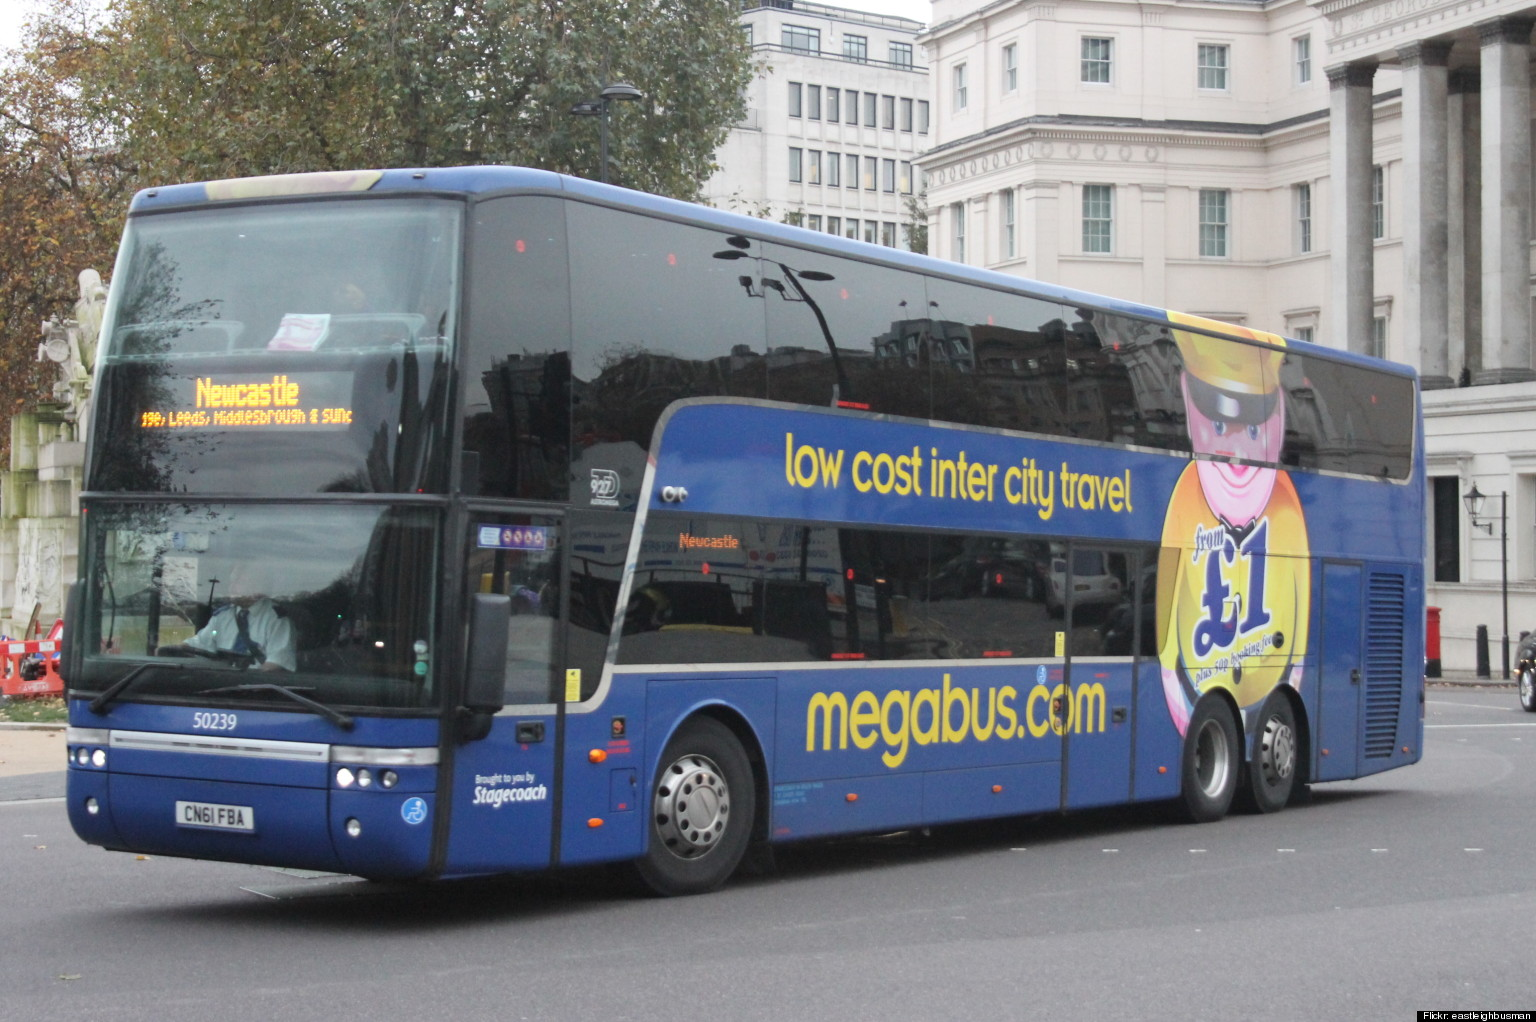 megabus california low cost bus service expands into golden state with 1 san francisco to los. Black Bedroom Furniture Sets. Home Design Ideas